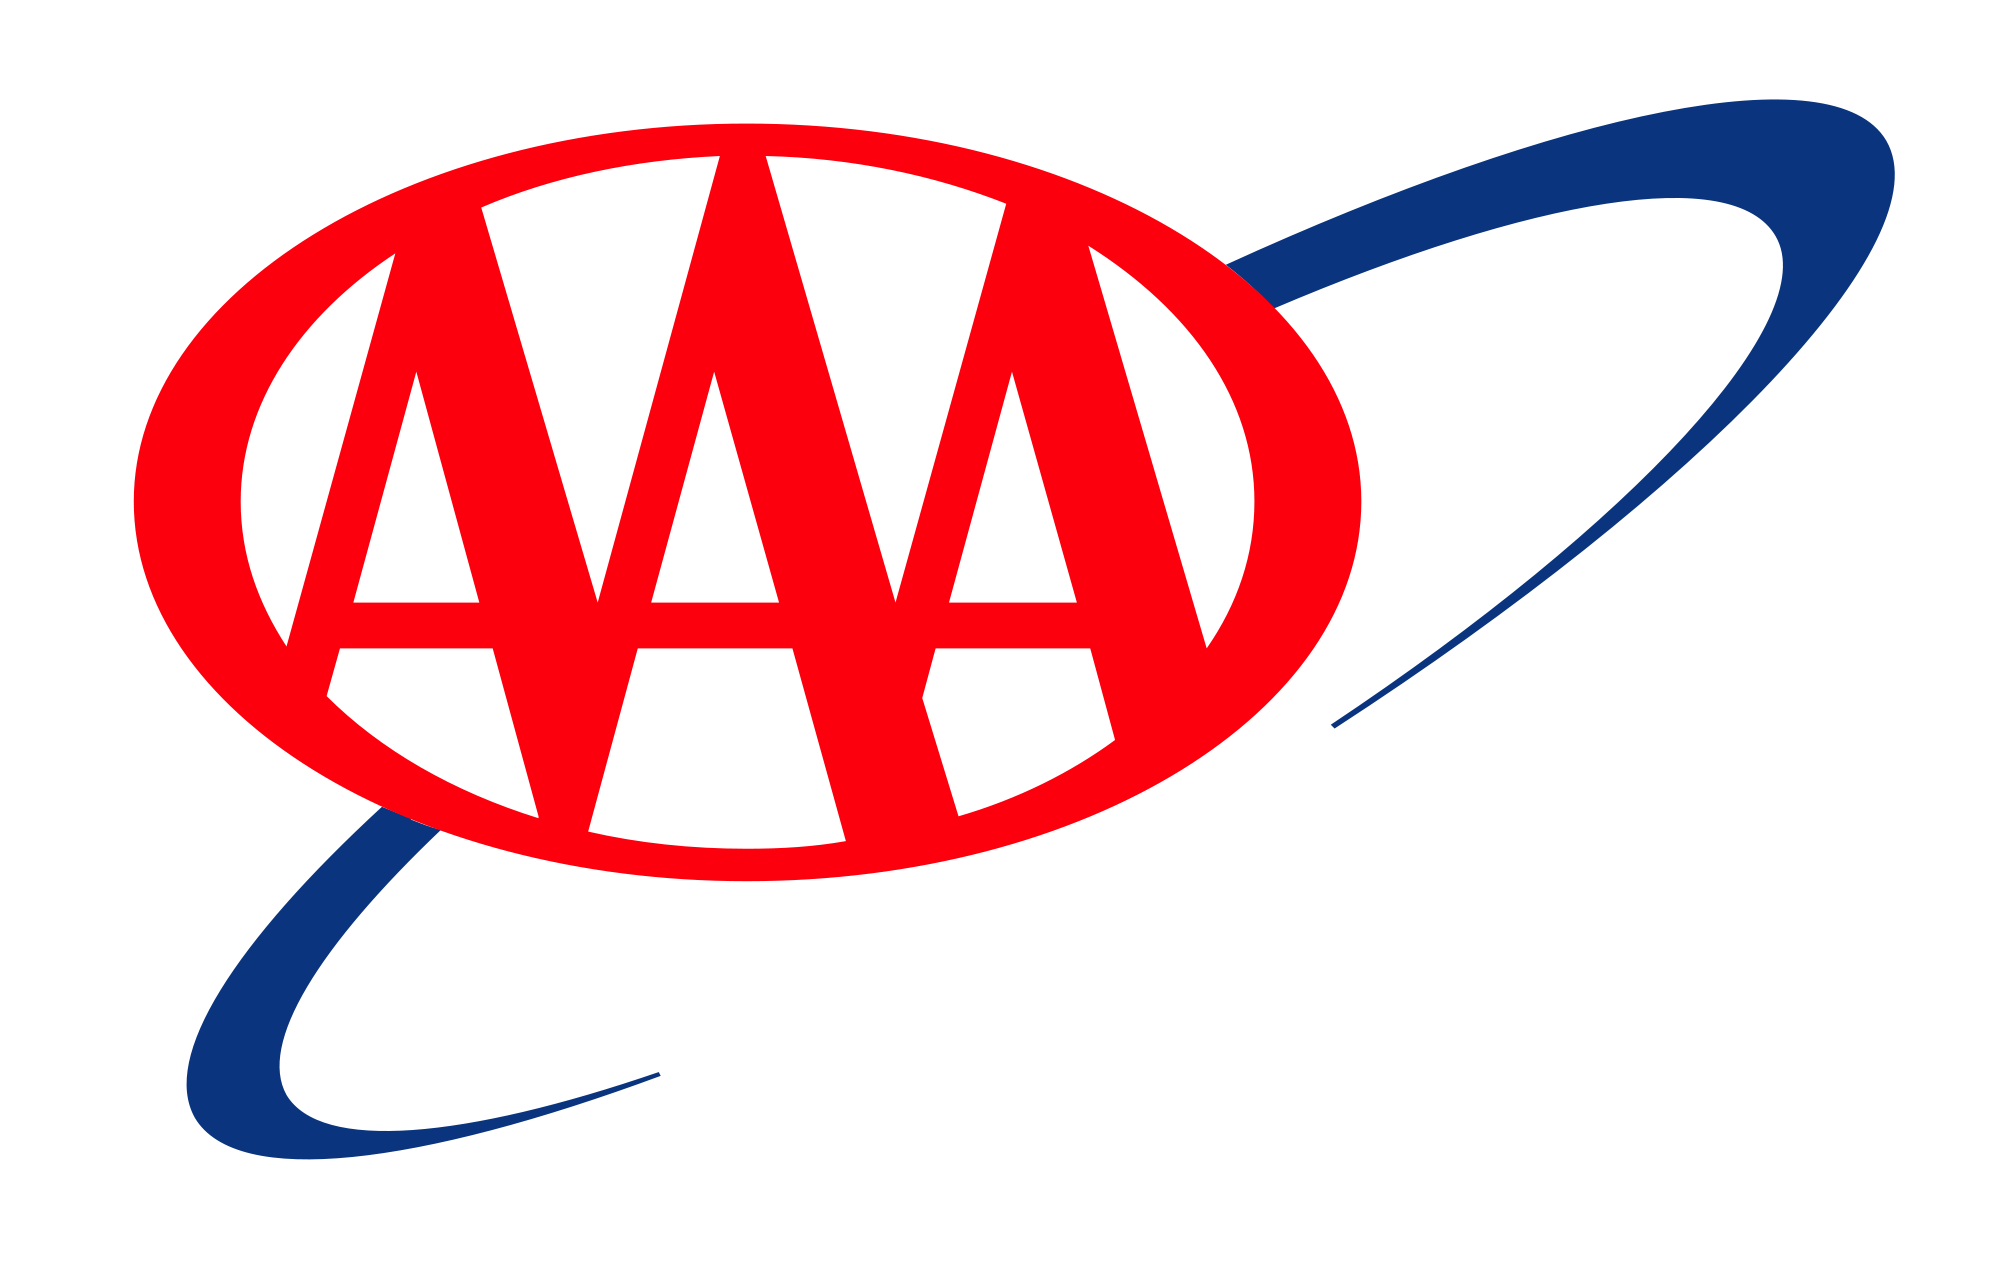 Aaa Approved Jack S Auto Service